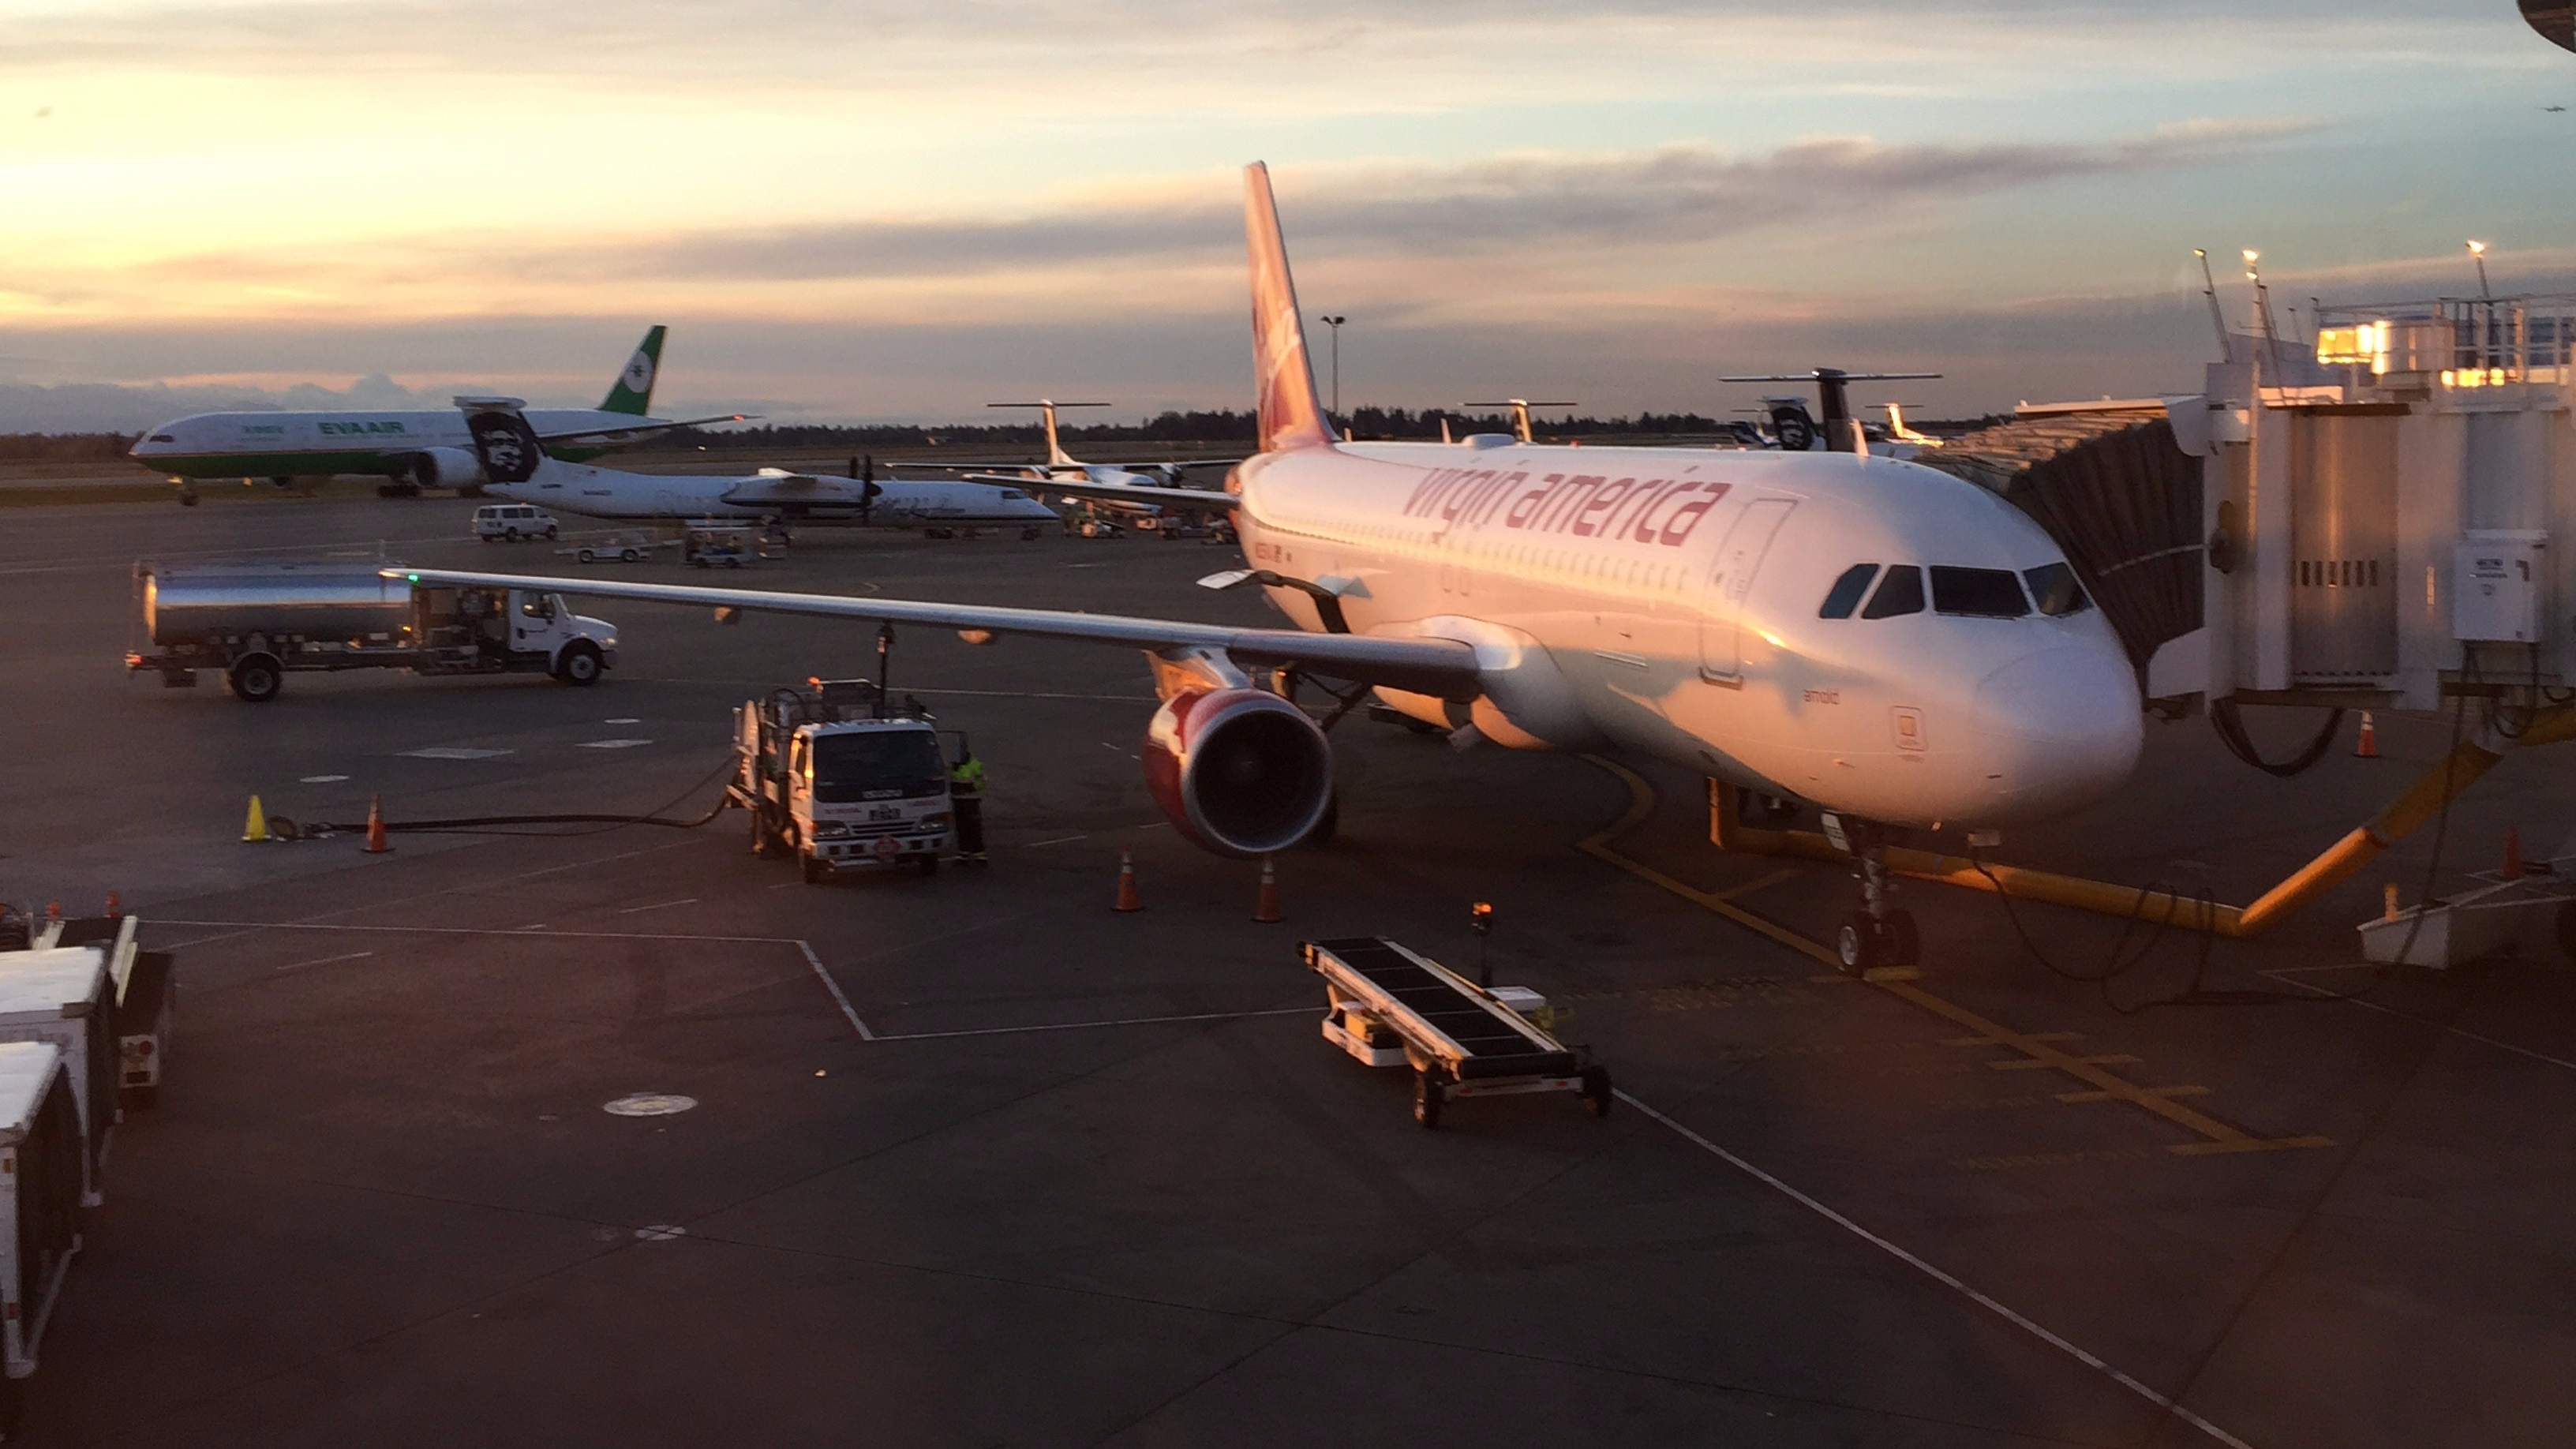 Review: Virgin America Economy A320-200 Seattle to Los Angeles